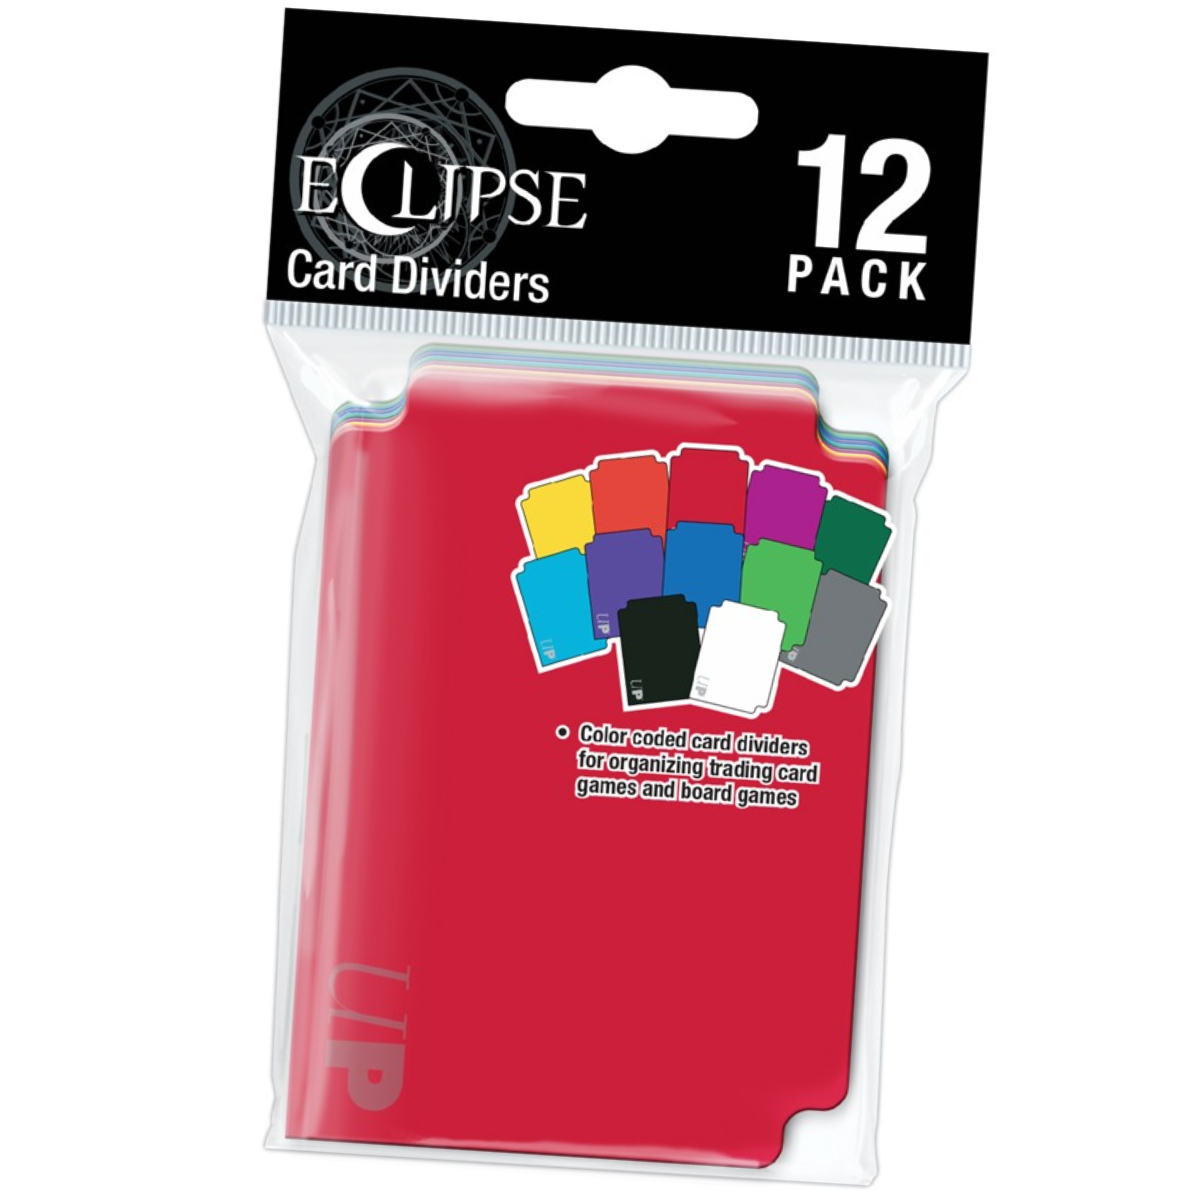 Ultra Pro Eclipse Card Dividers 12